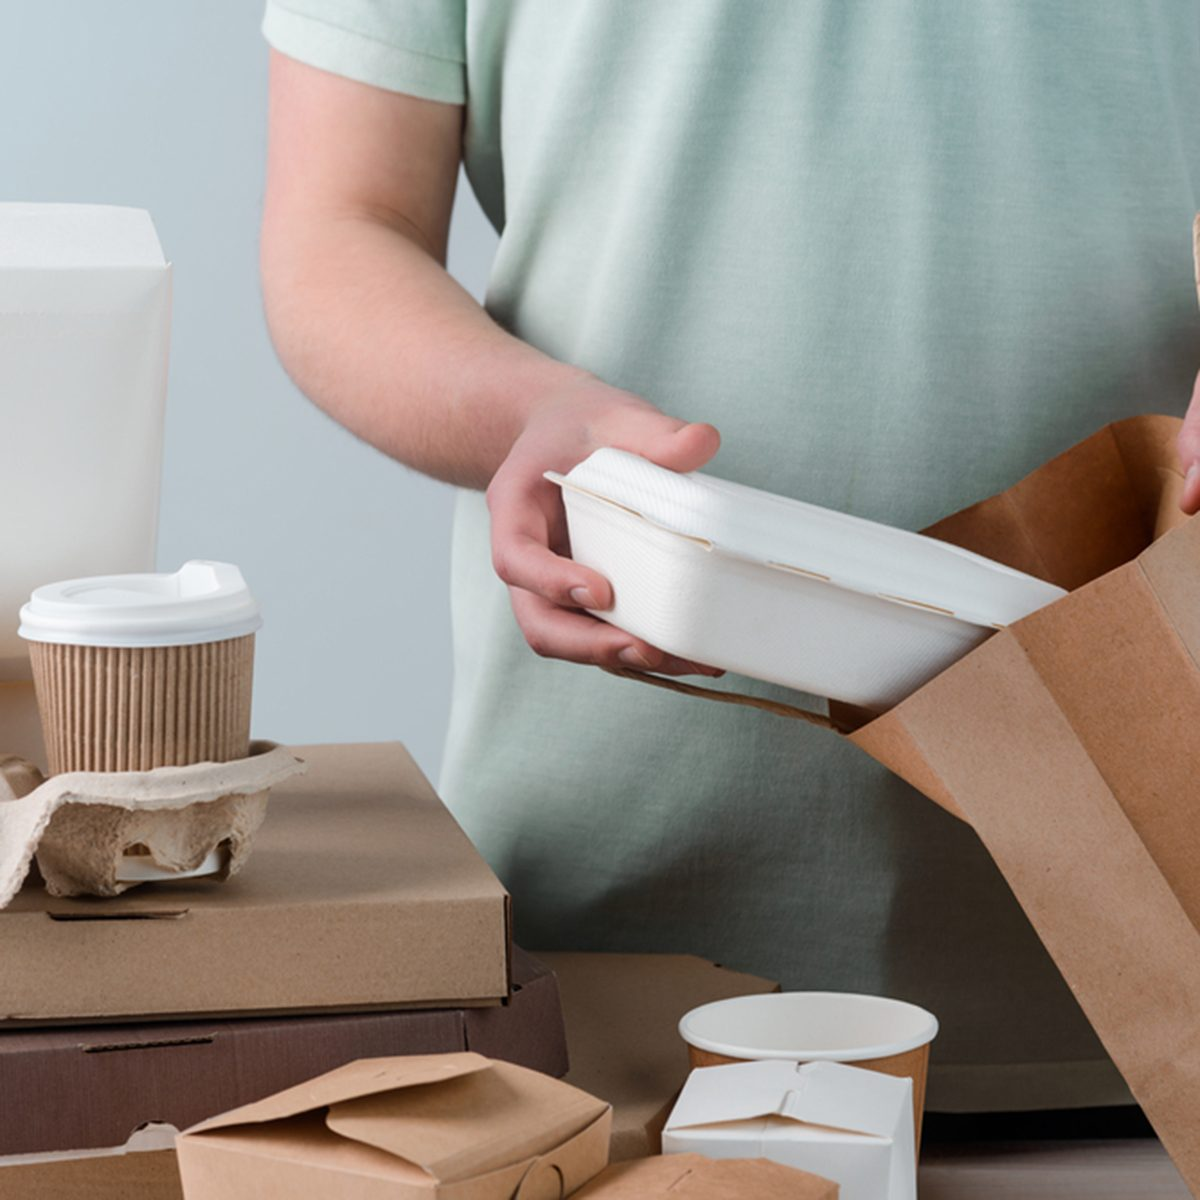 Male hands putting take-out food container into paper bag, close-up.